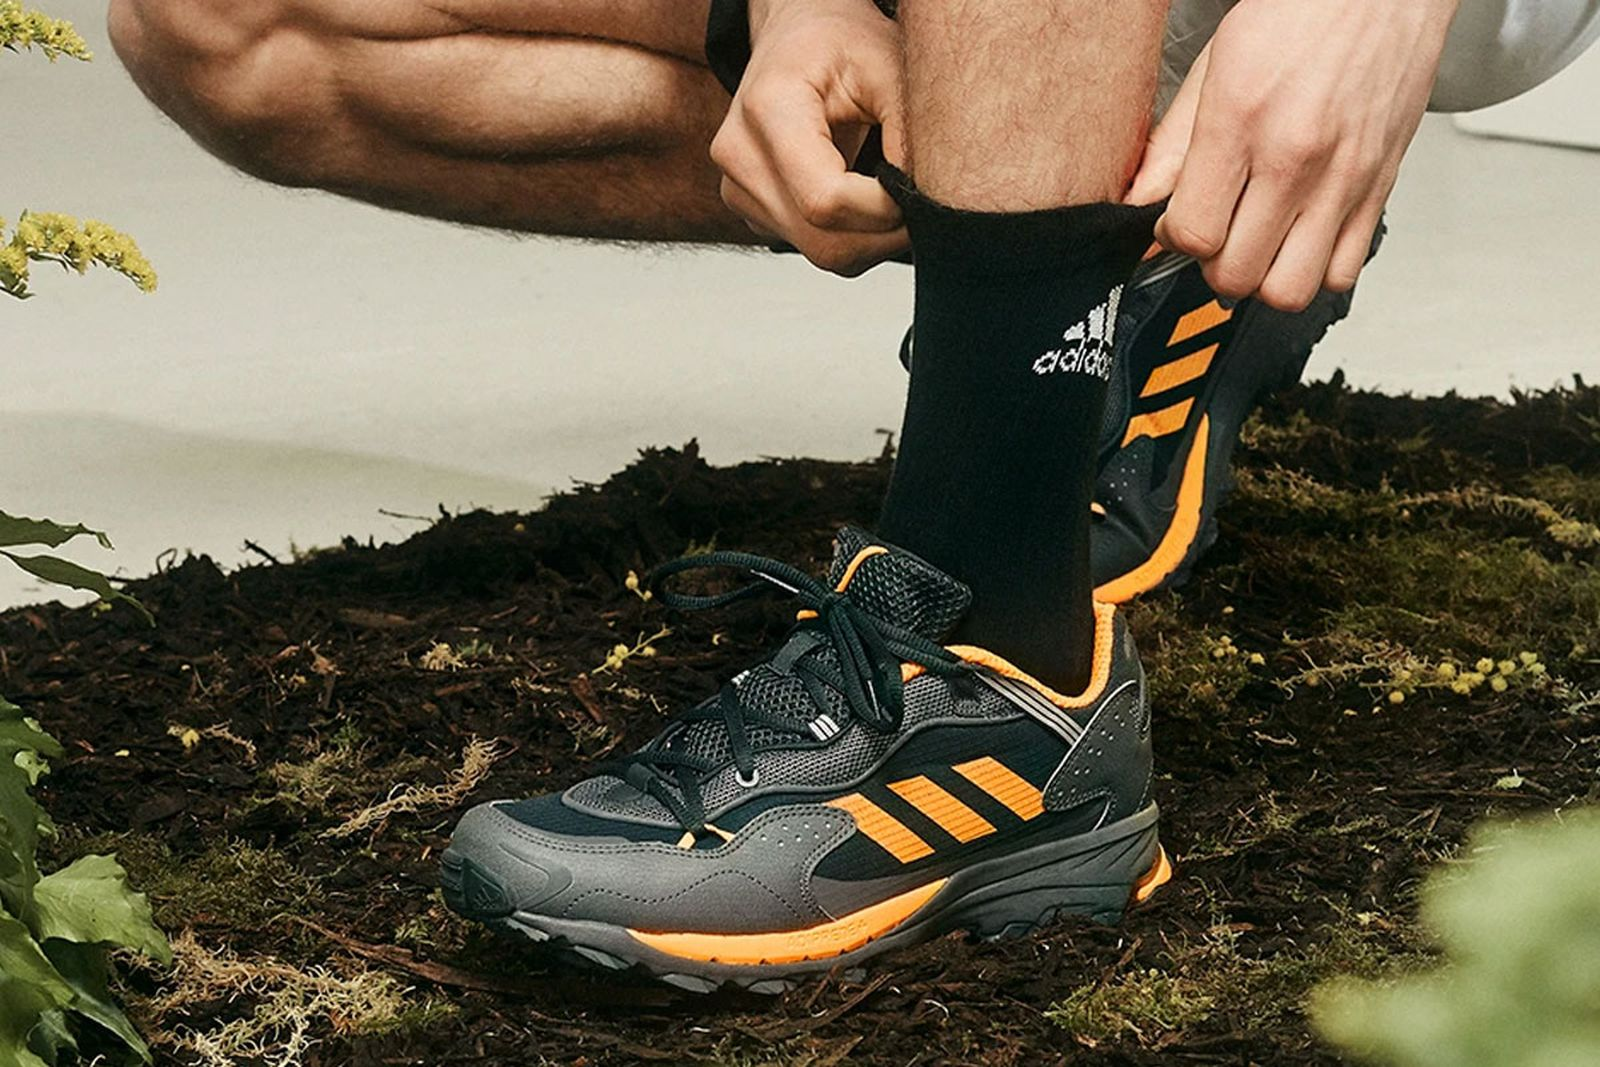 adidas-consortium-response-hoverturf-shock-yellow-release-date-price-05